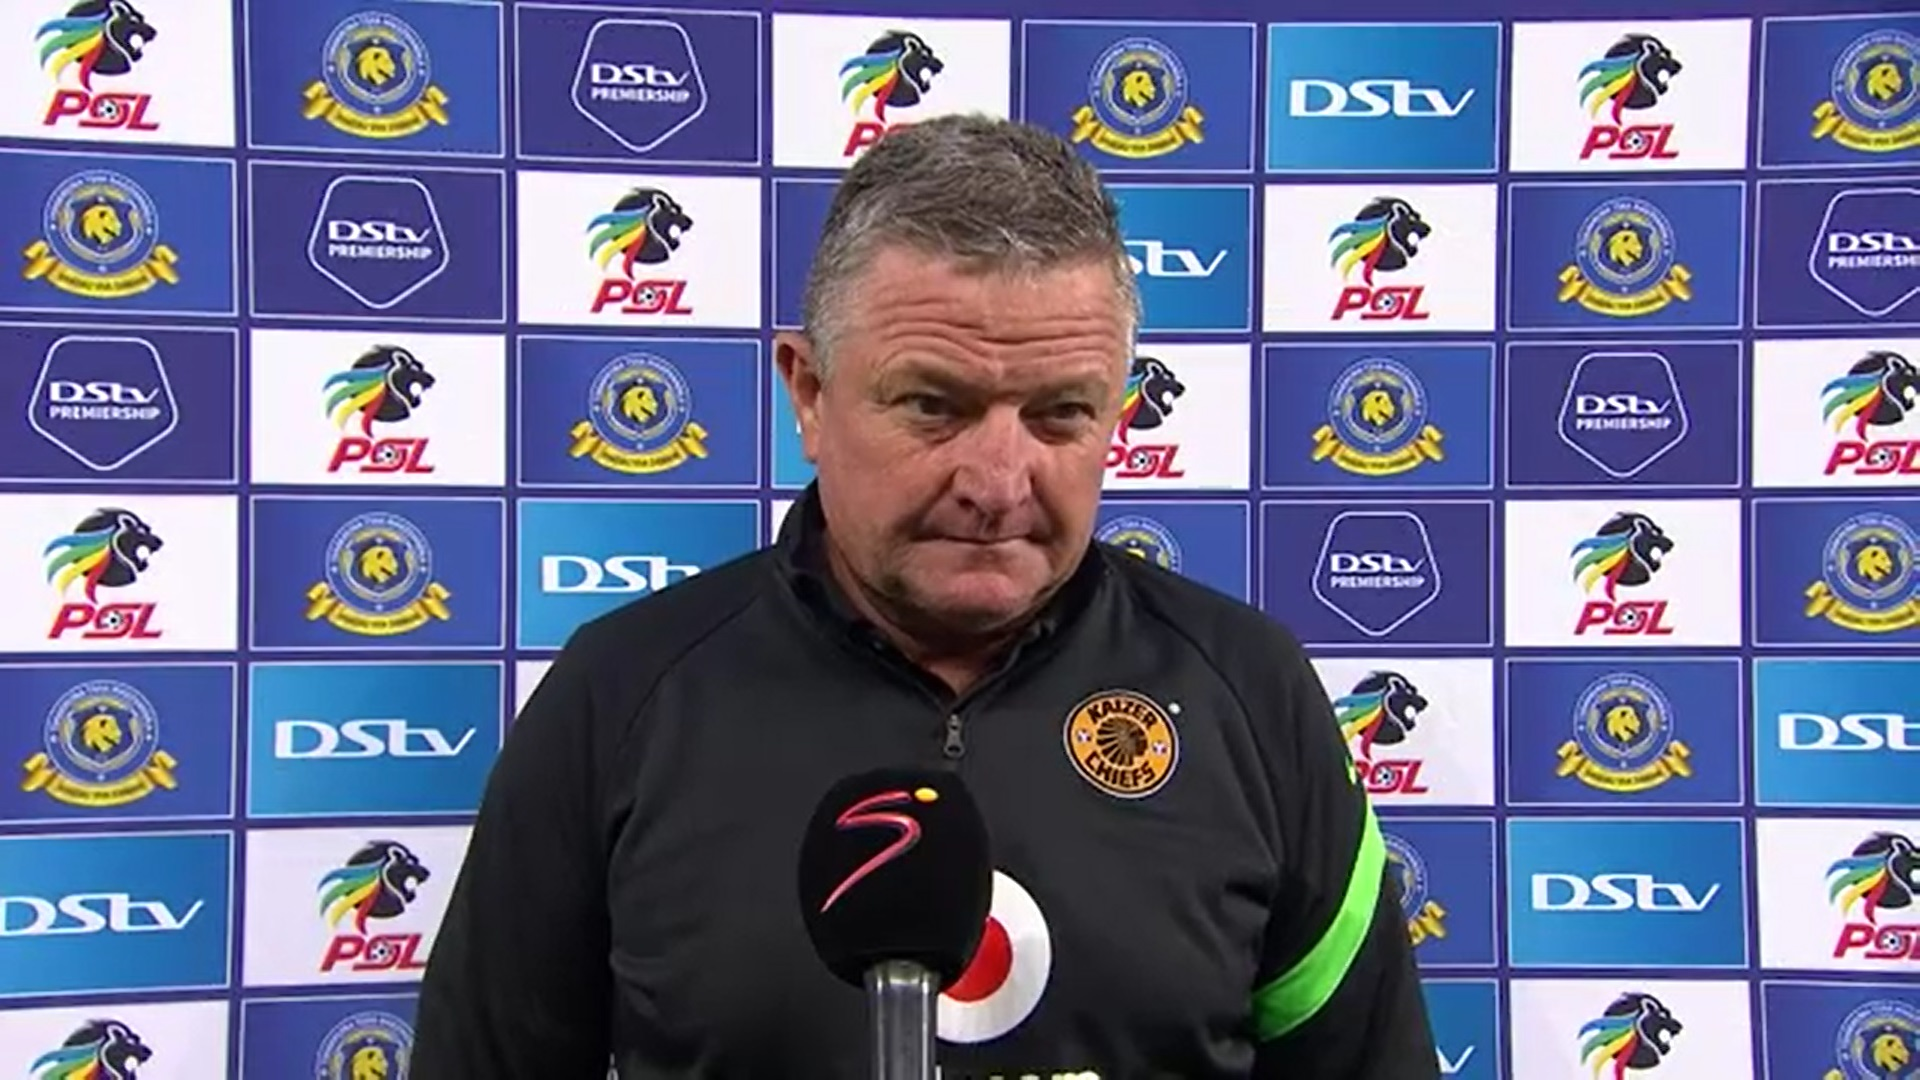 DStv Premiership | Tshakhuma FC v Kaizer Chiefs | Post-match interview with Gavin Hunt